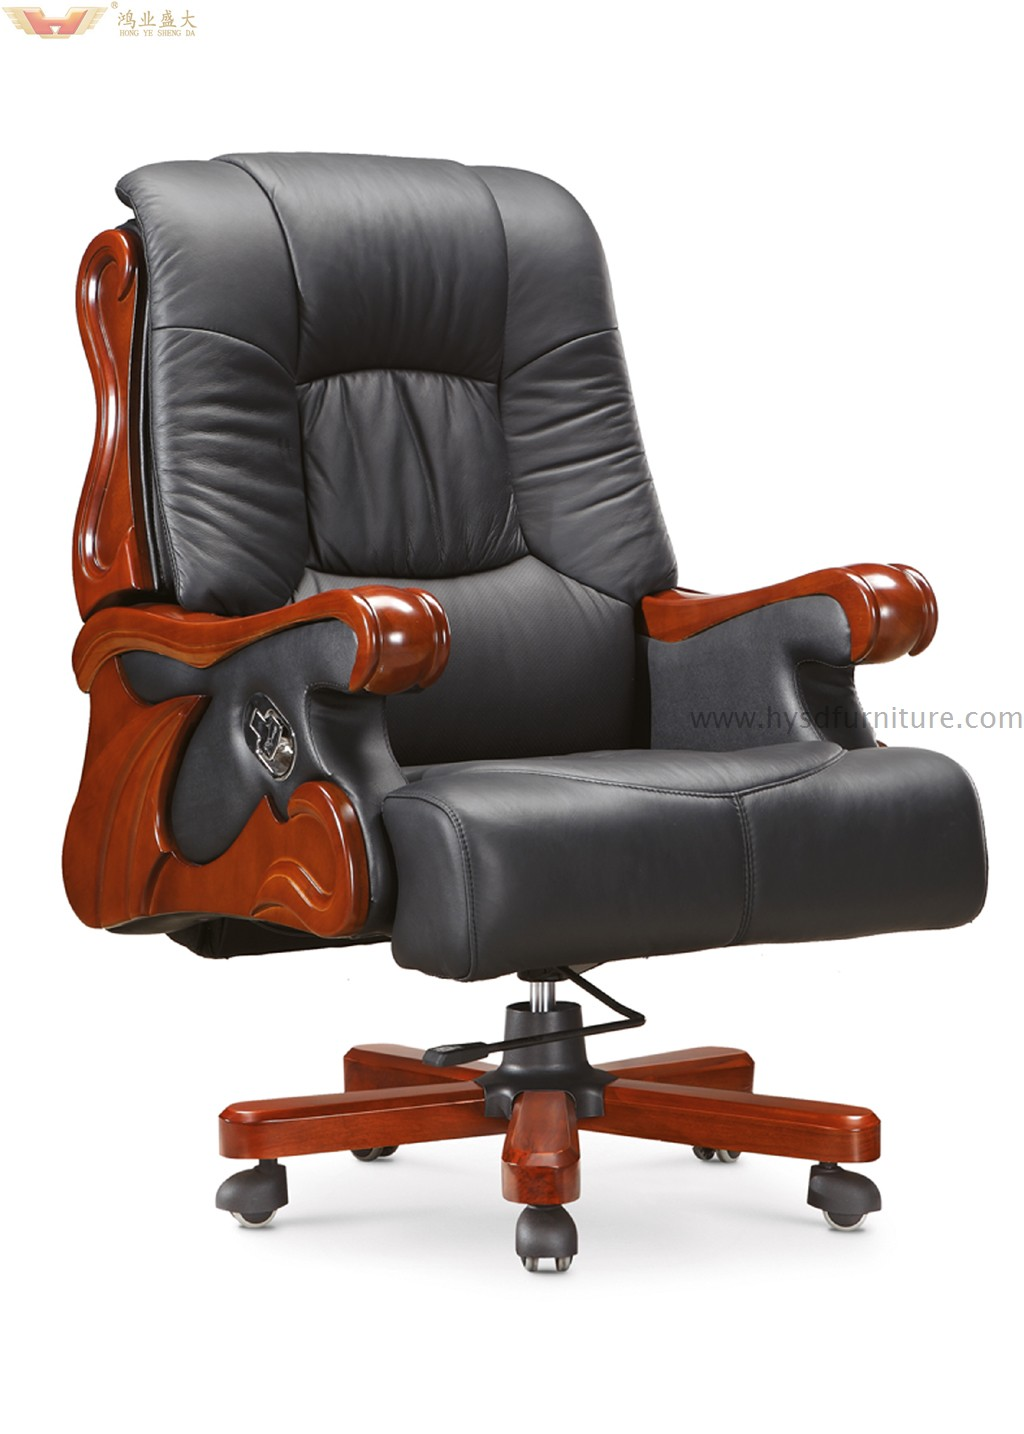 Luxury Executive Commercial Leather Office Chair (A-041) | China ...